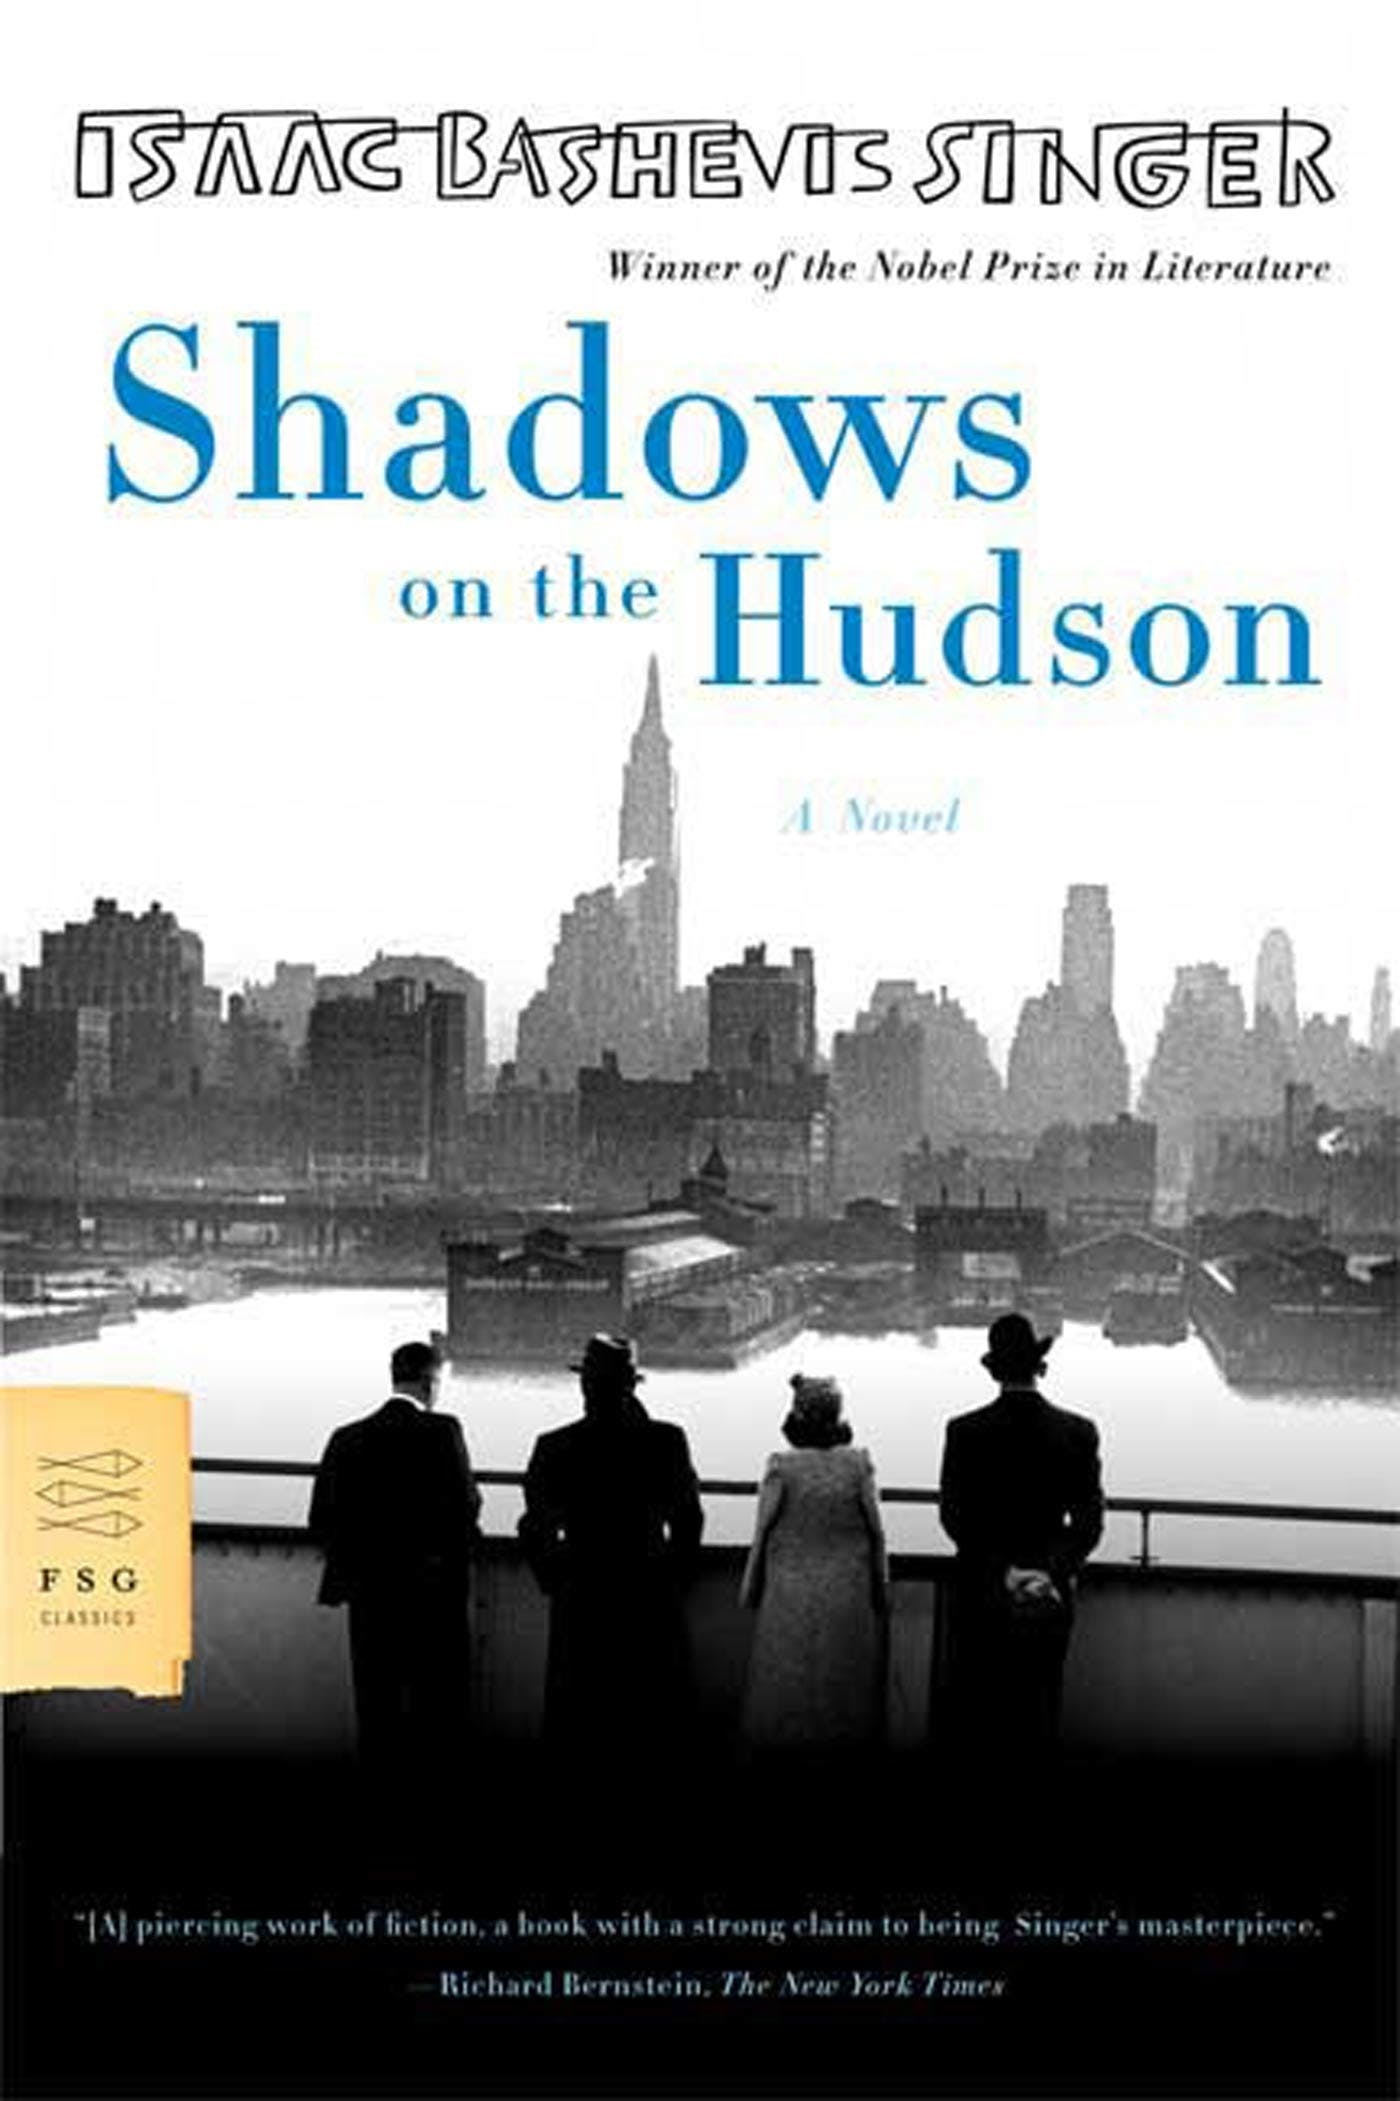 Image of Shadows on the Hudson